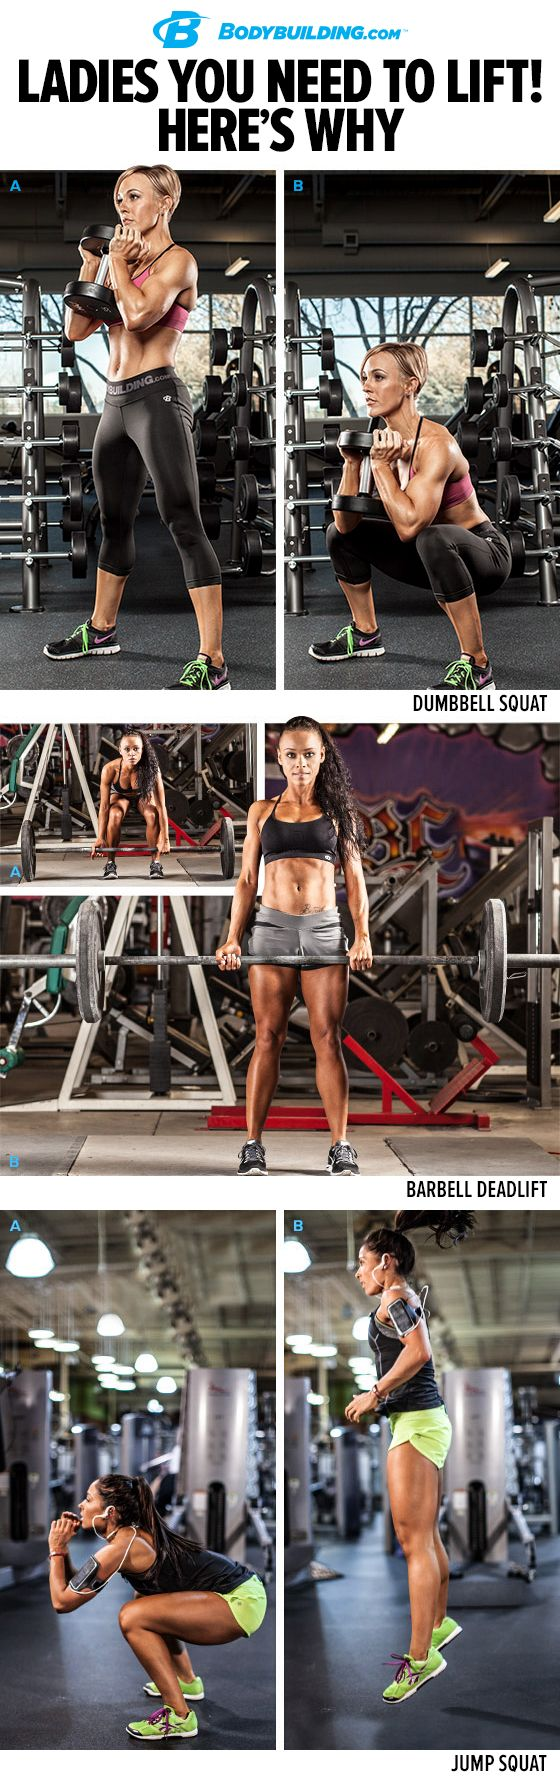 LADIES, if you want get fit, you need to lift weights. Learn the many benefits of strength training, and get started with this complete training plan! Bodybuilding.com I love this getting my muscle on.